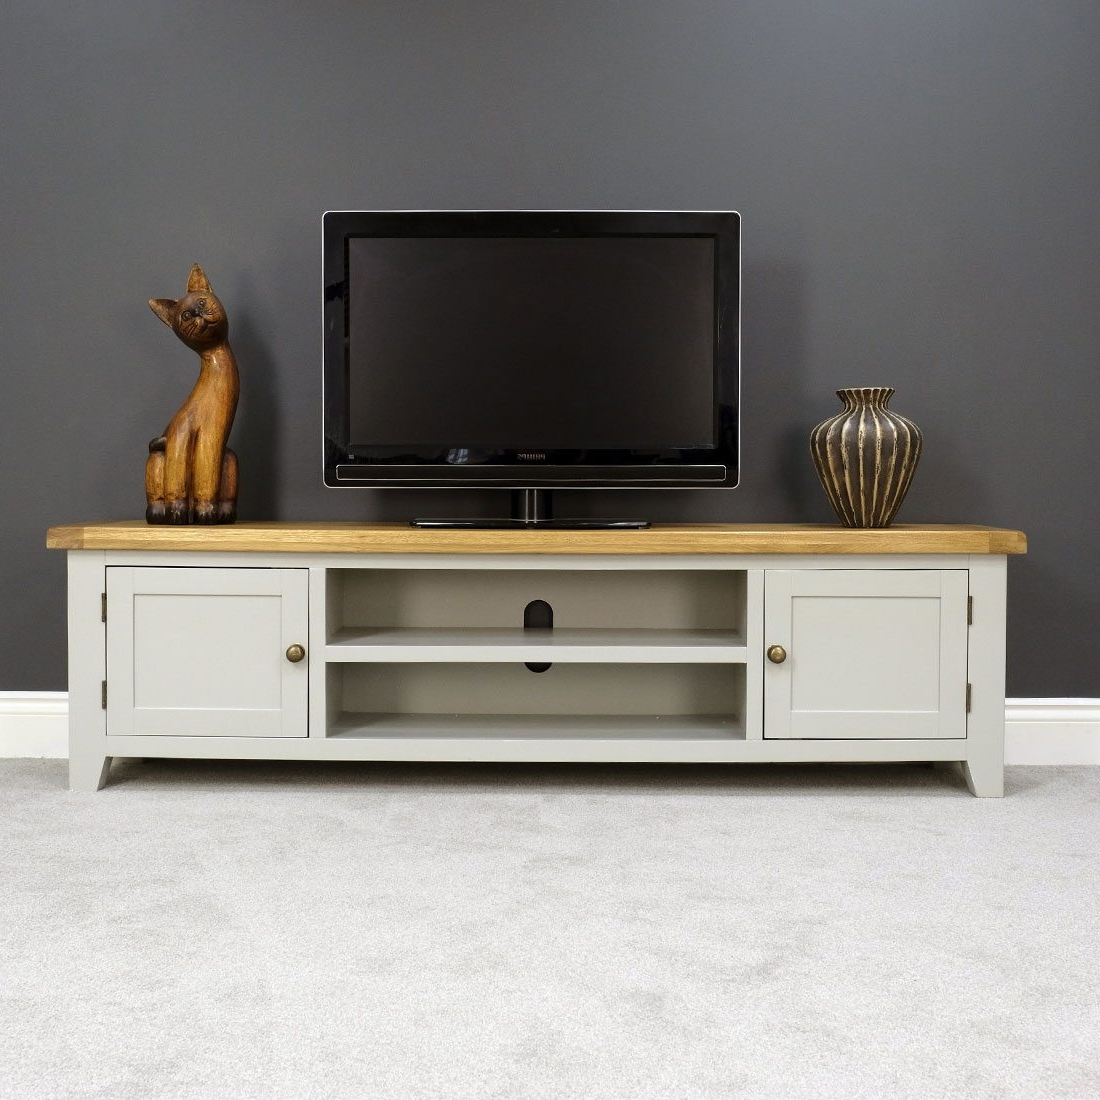 Painted Tv Stands Pertaining To 2017 Arklow Painted Oak Extra Large Tv Stand / Grey Solid Tv Dvd Cabinet (View 14 of 20)